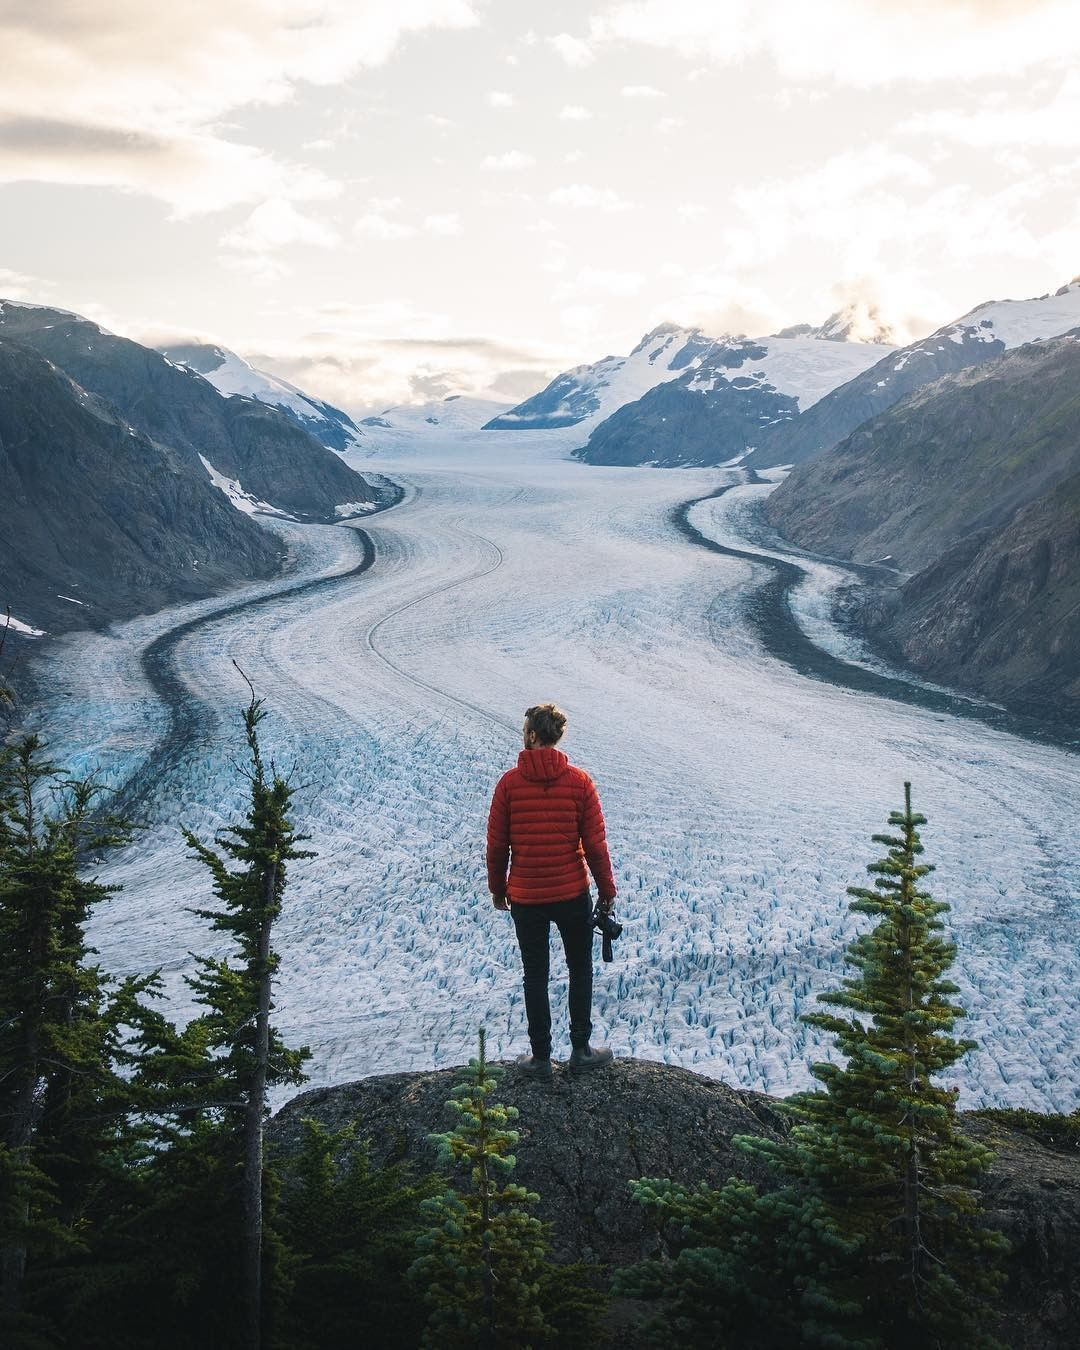 """Photo of Destination British Columbia on Instagram: """"Just north of Stewart near the Alaskan border lies the fifth largest glacier in Canada—Salmon Glacier. Have you been? Photo by…"""""""